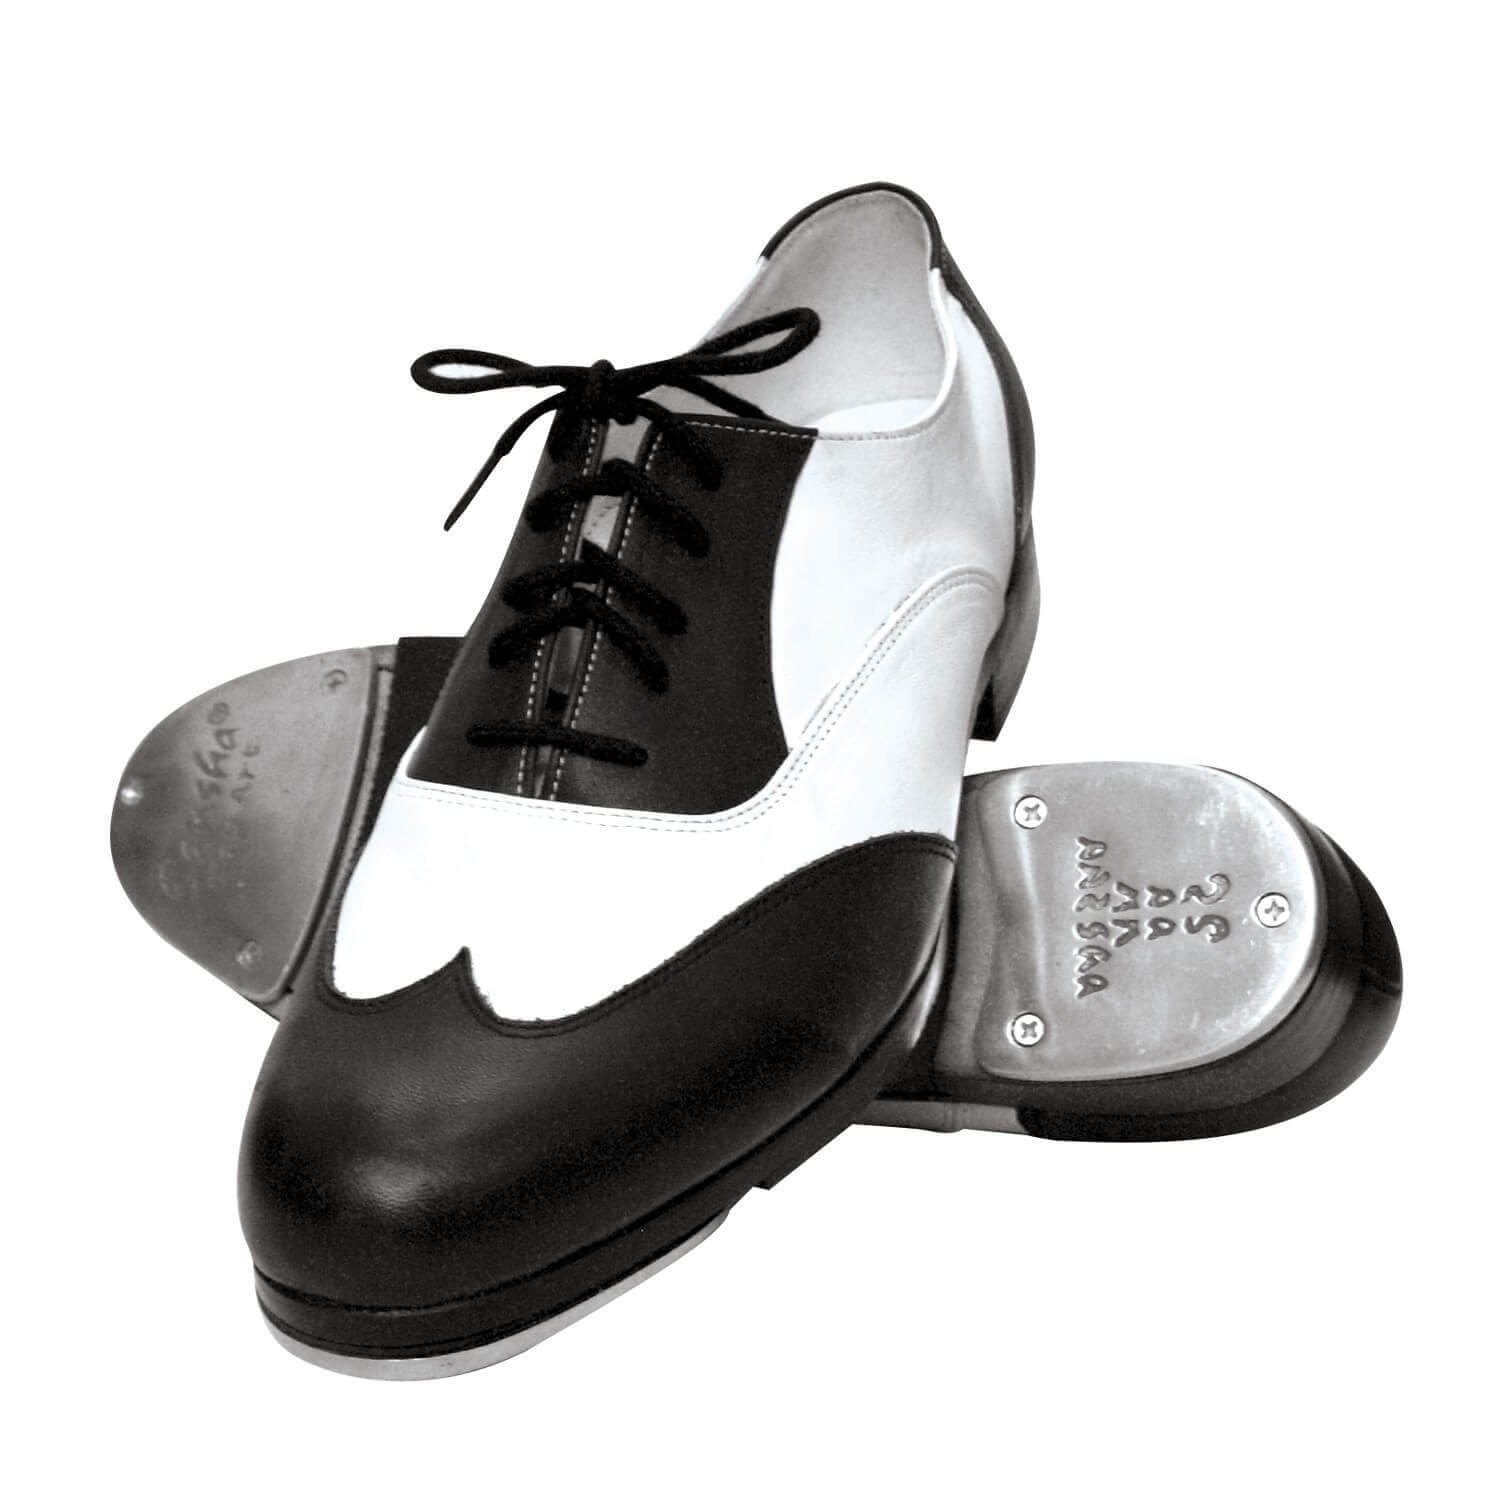 Sansha Ta88l Leather Two-tone Tap Shoes